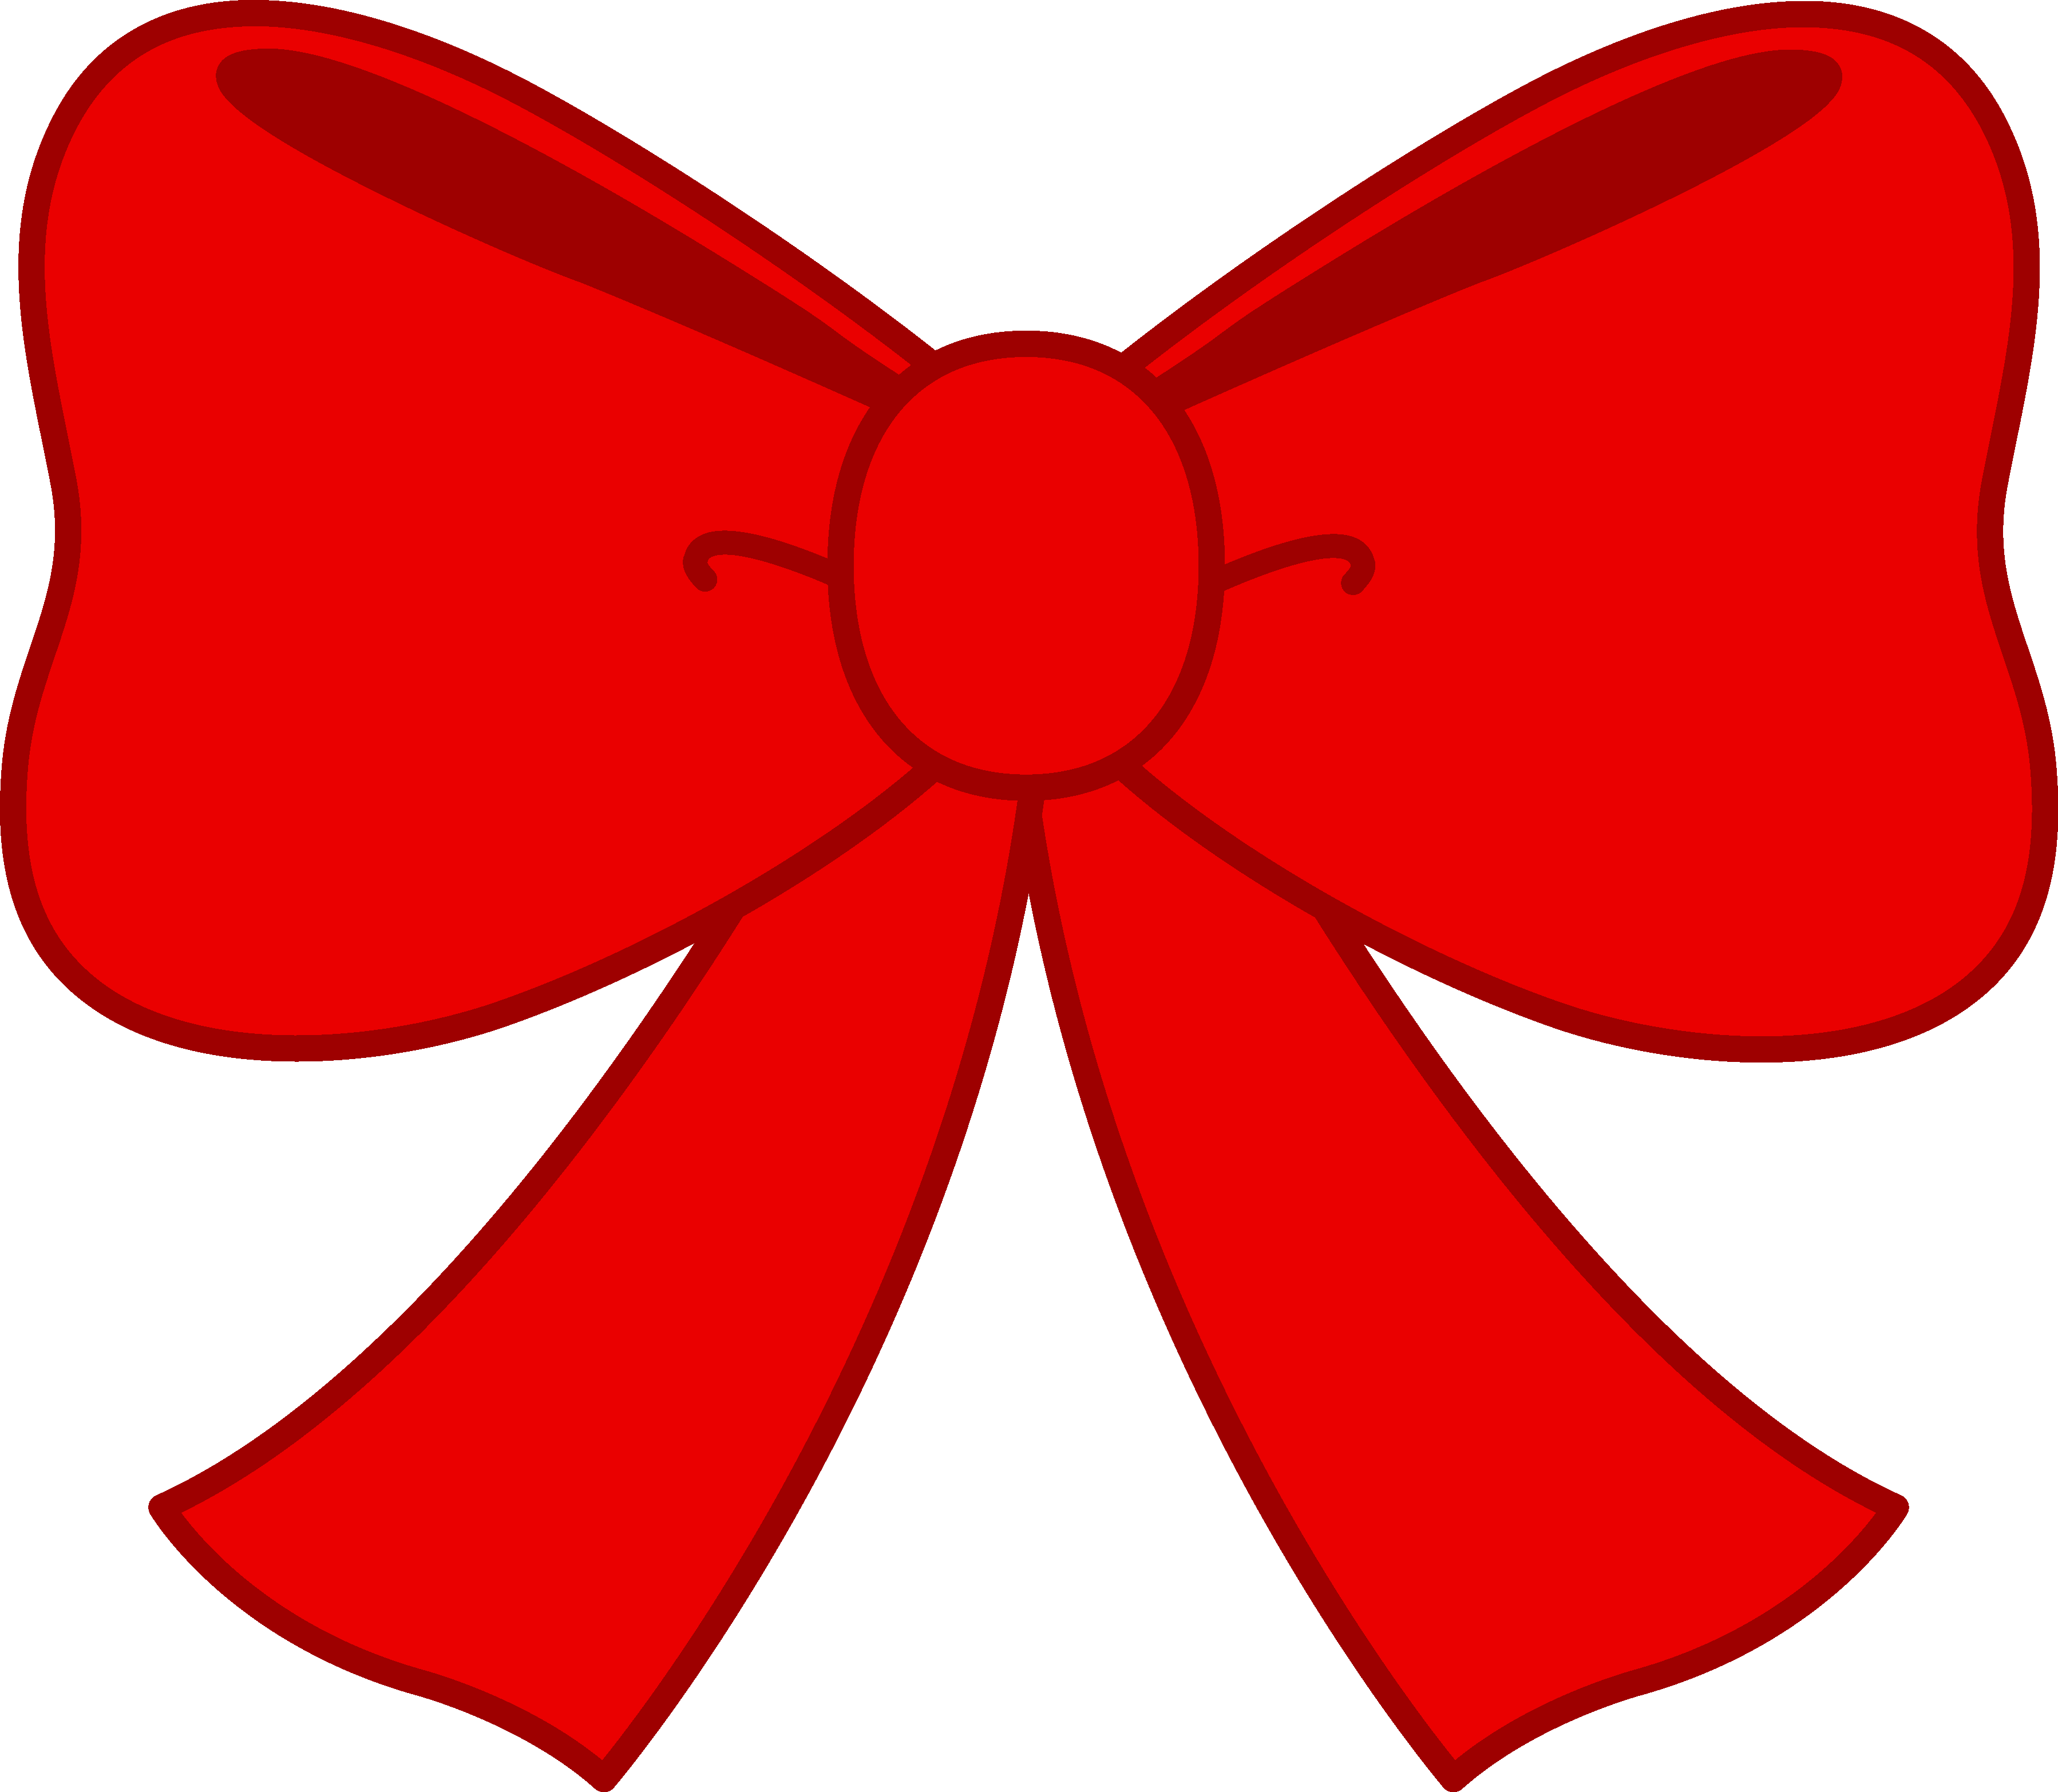 Bow clipart free vector free stock Free Bow Cliparts, Download Free Clip Art, Free Clip Art on Clipart ... vector free stock